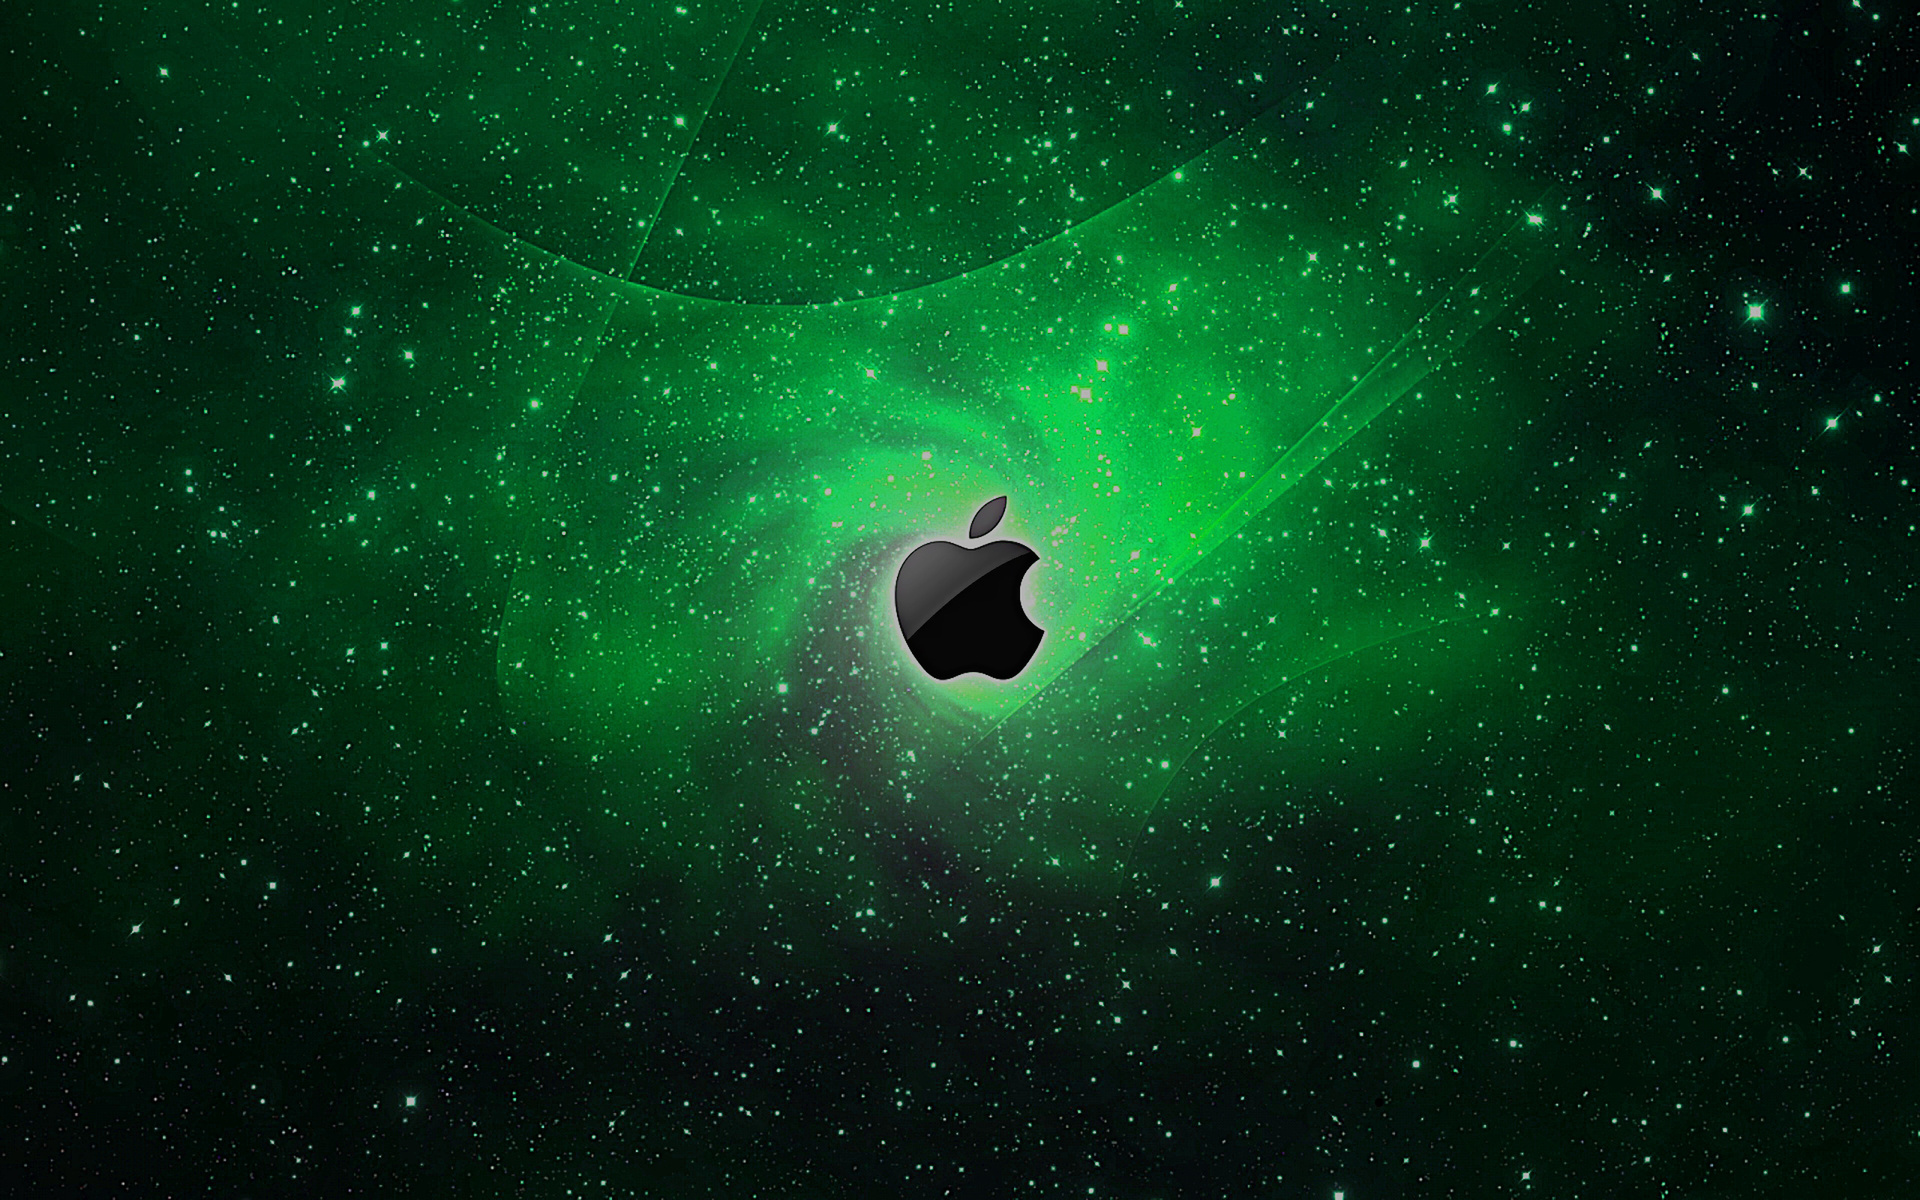 Apple Background Wallpapers Pictures Images